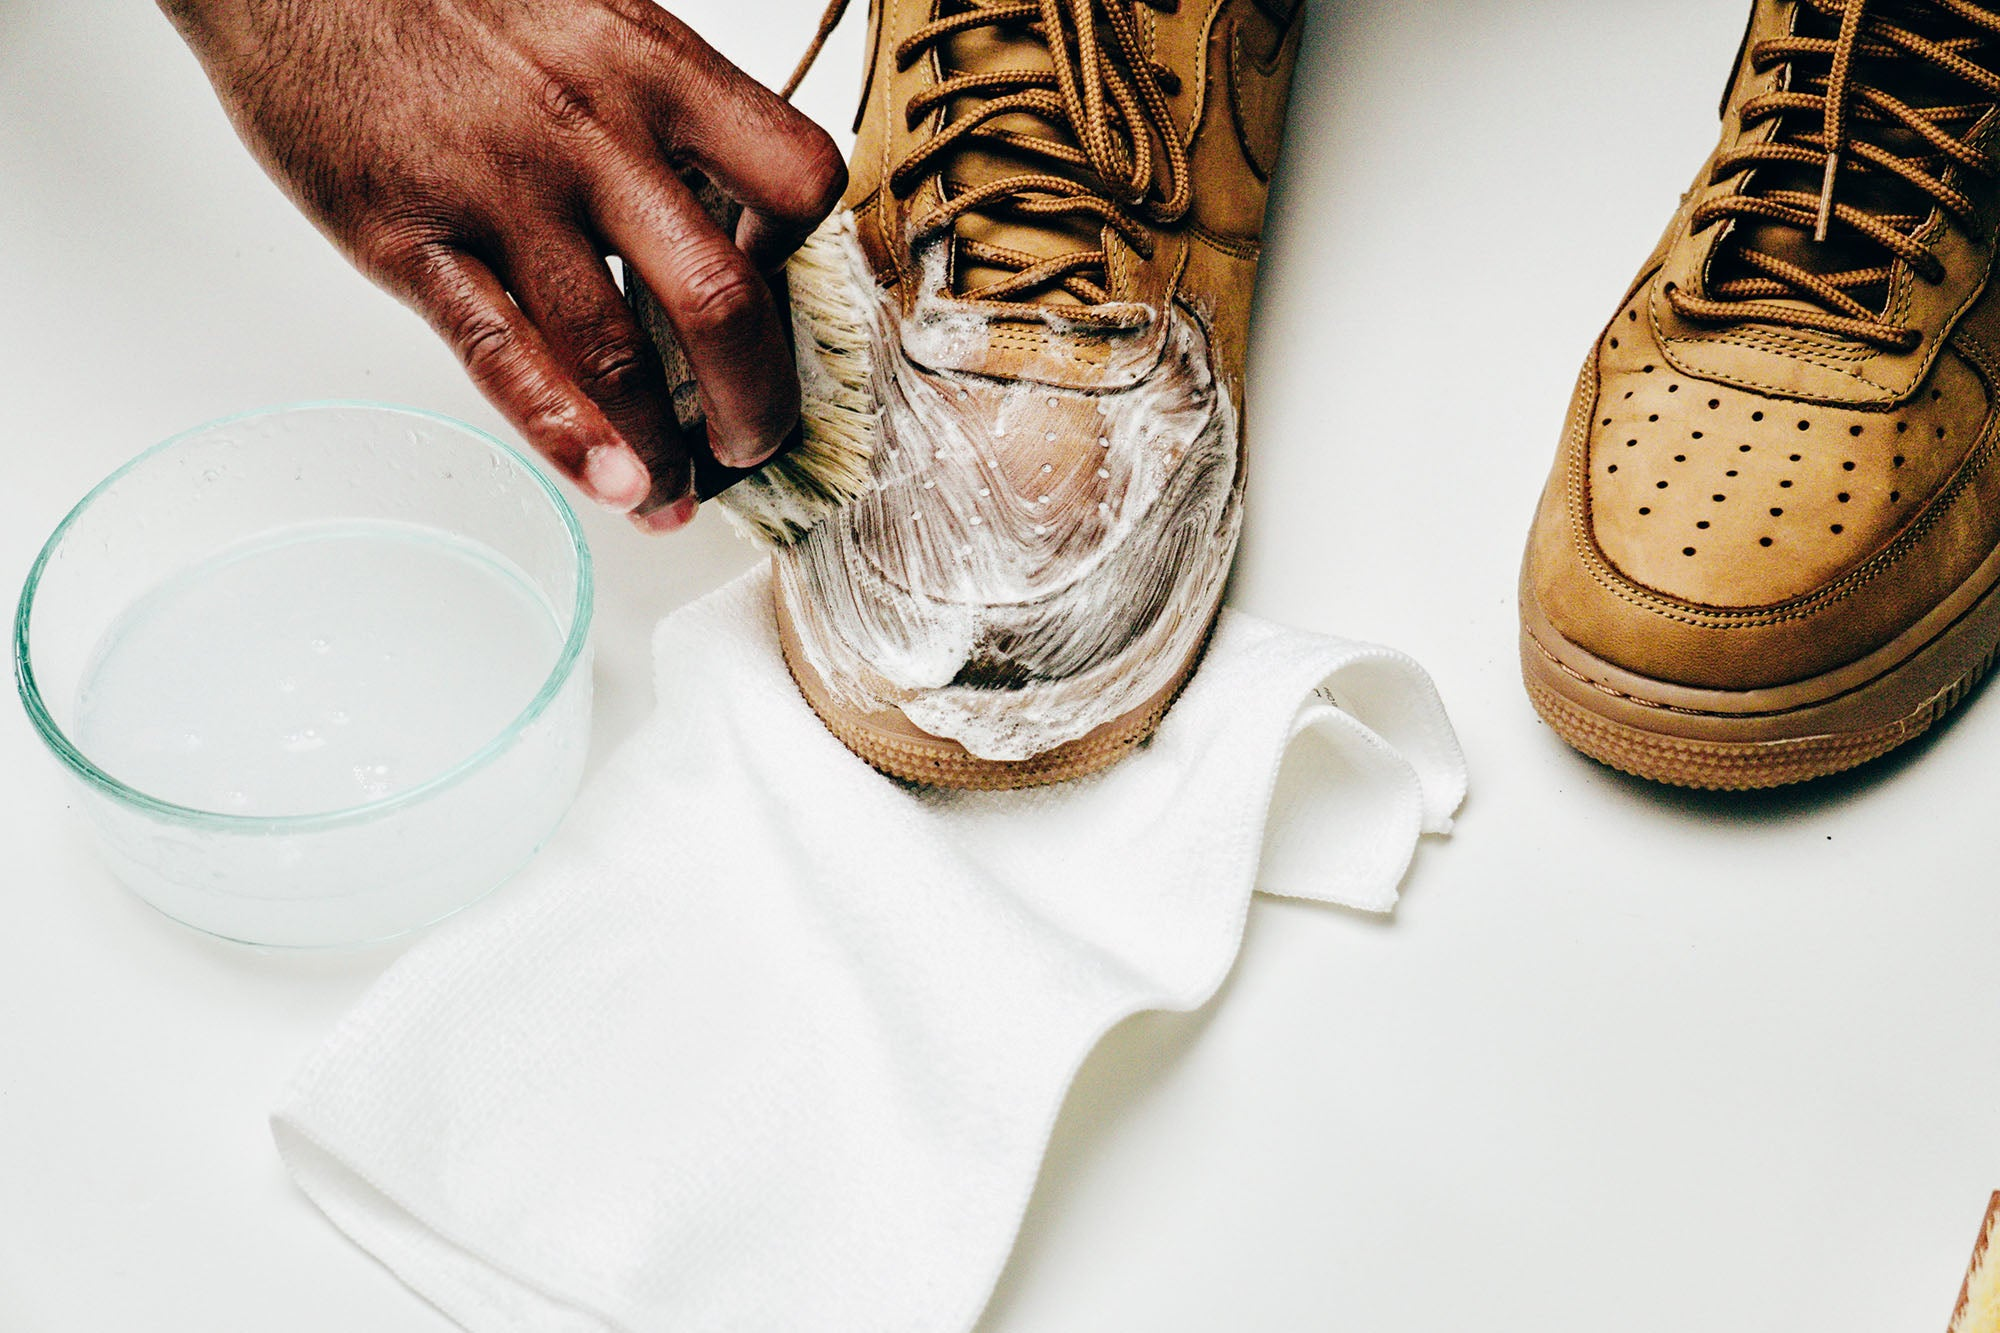 Jason Markk Sneaker Care 101 How to clean Nubuck shoes step 11